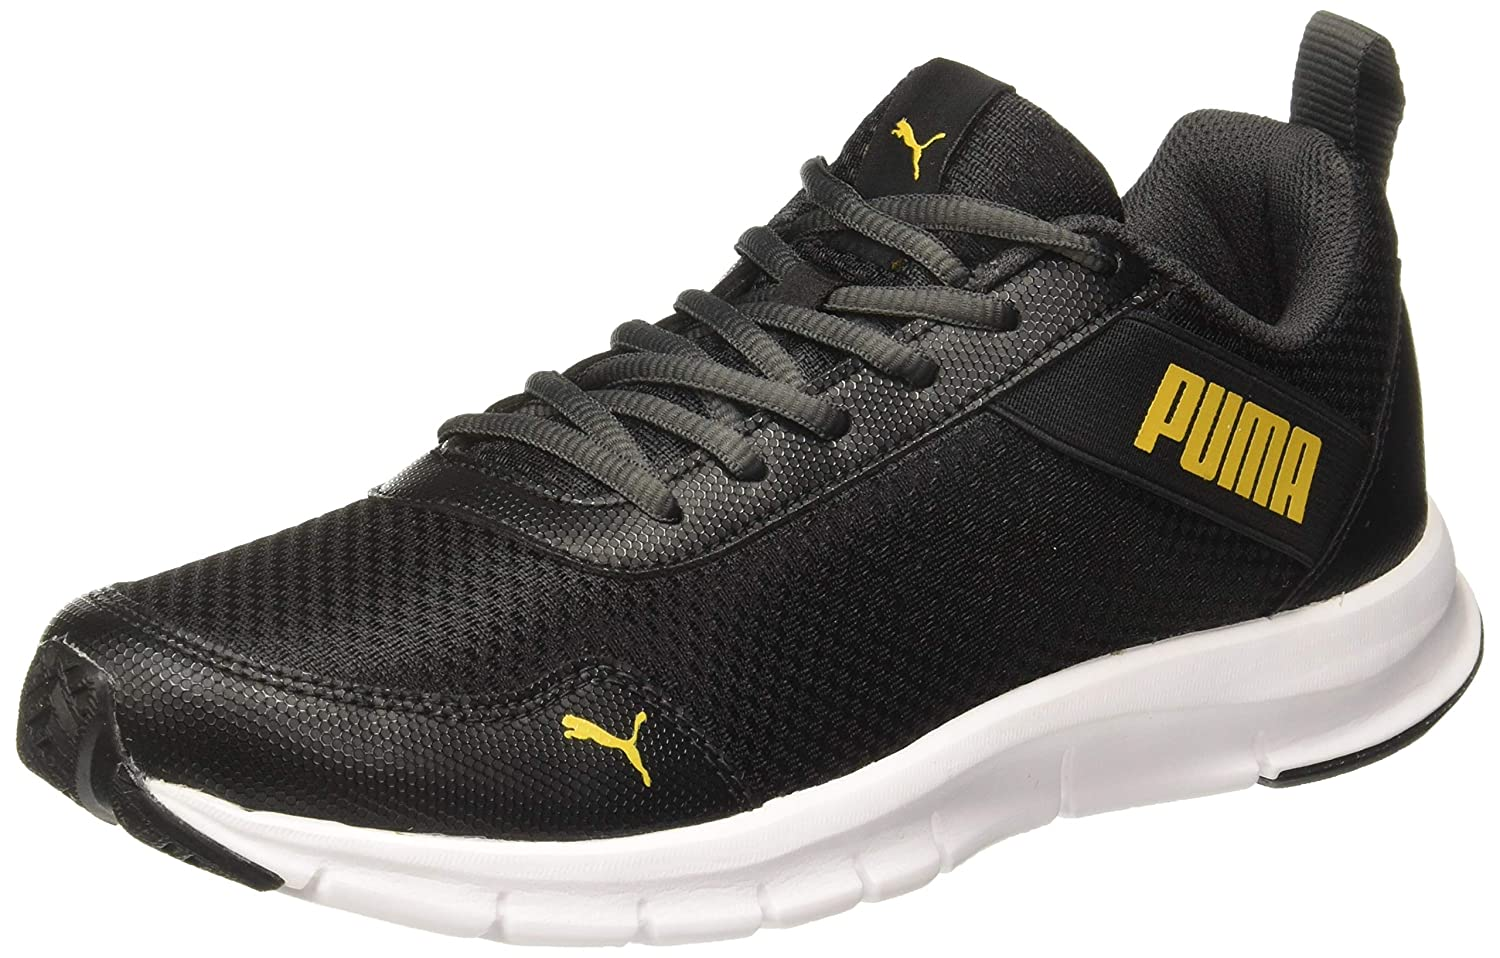 Movemax Idp Running Shoes For Men's